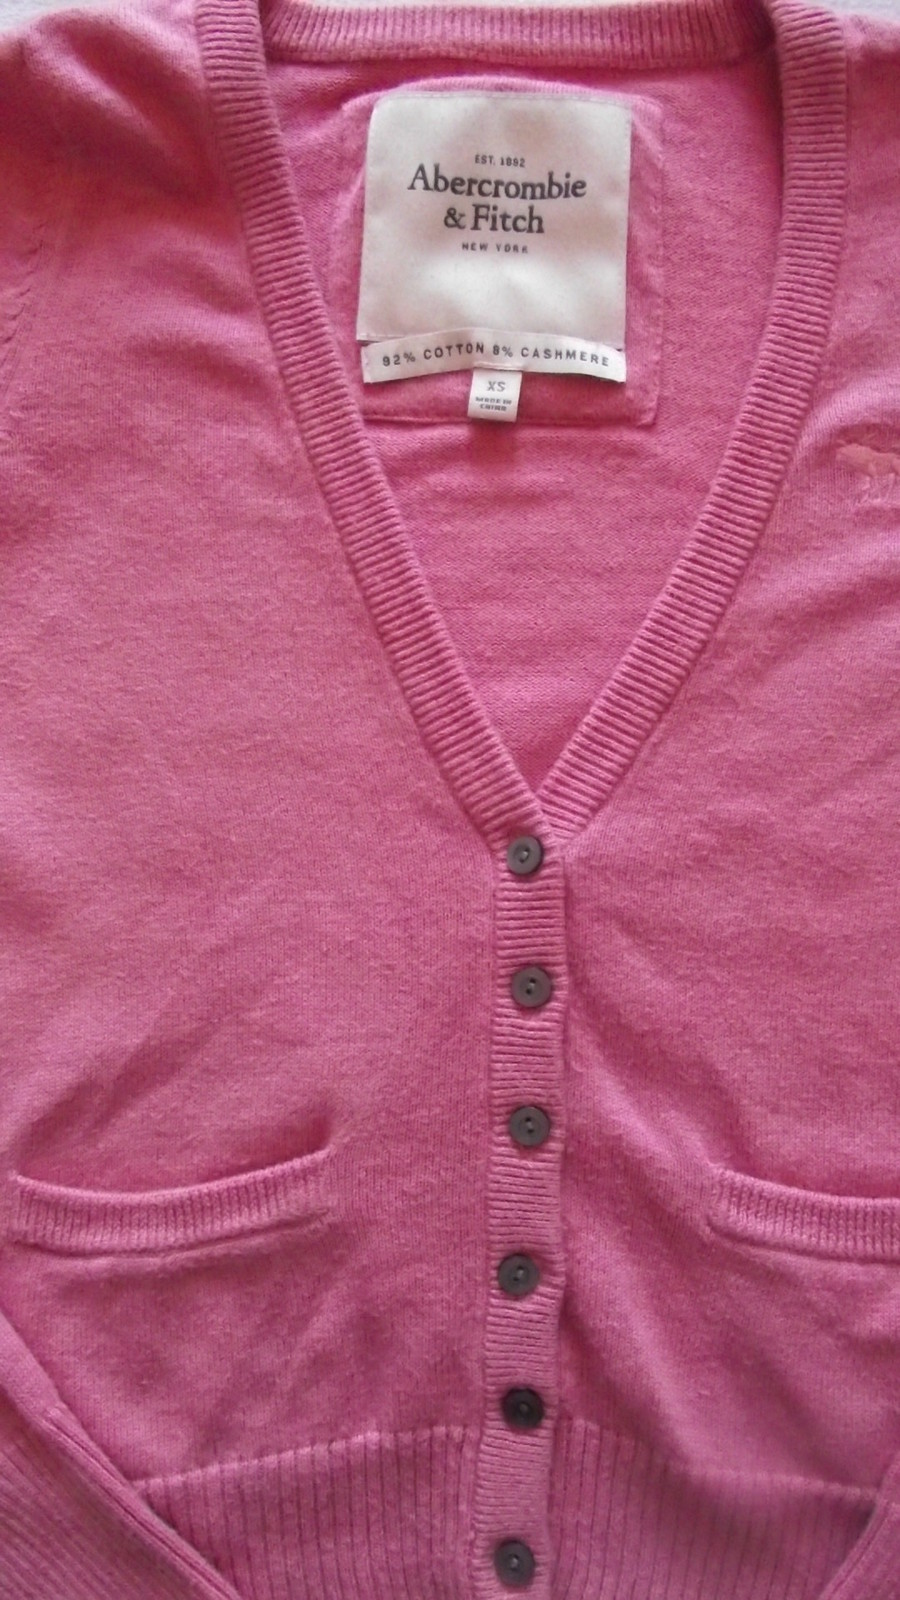 Abercrombie & Fitch women's/juniors xsmall Cartigan sweater